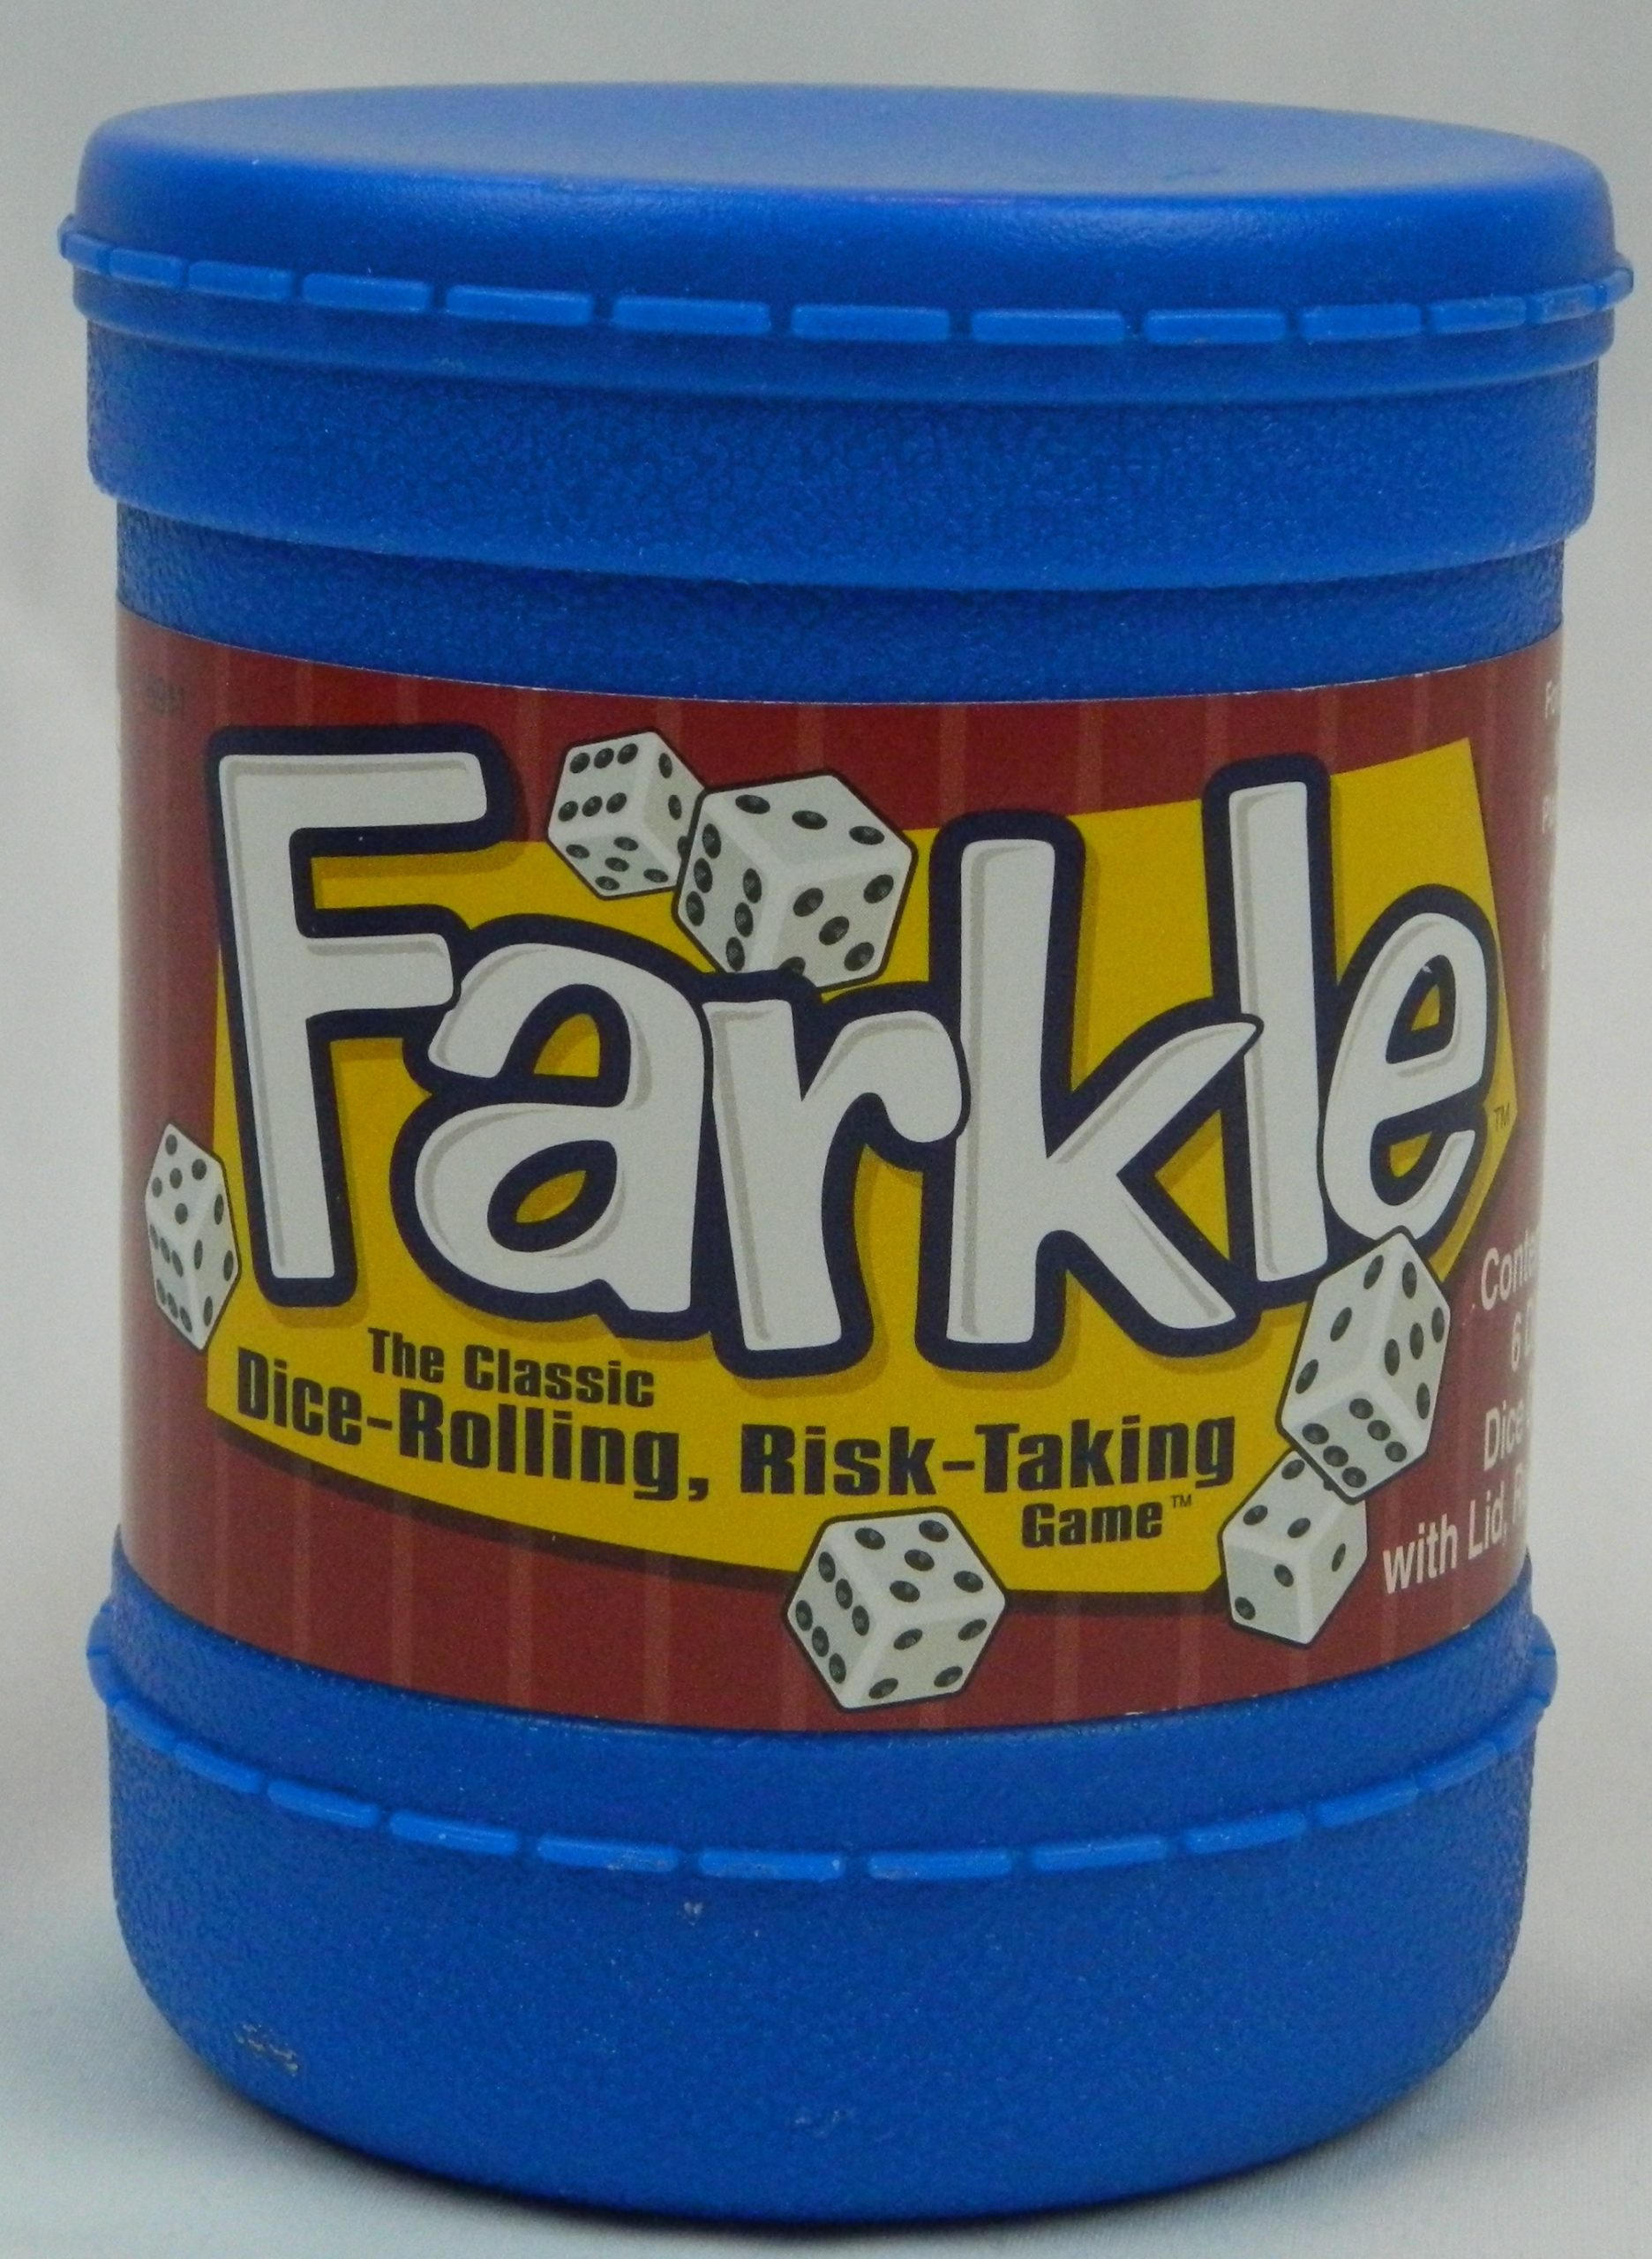 Box for Farkle